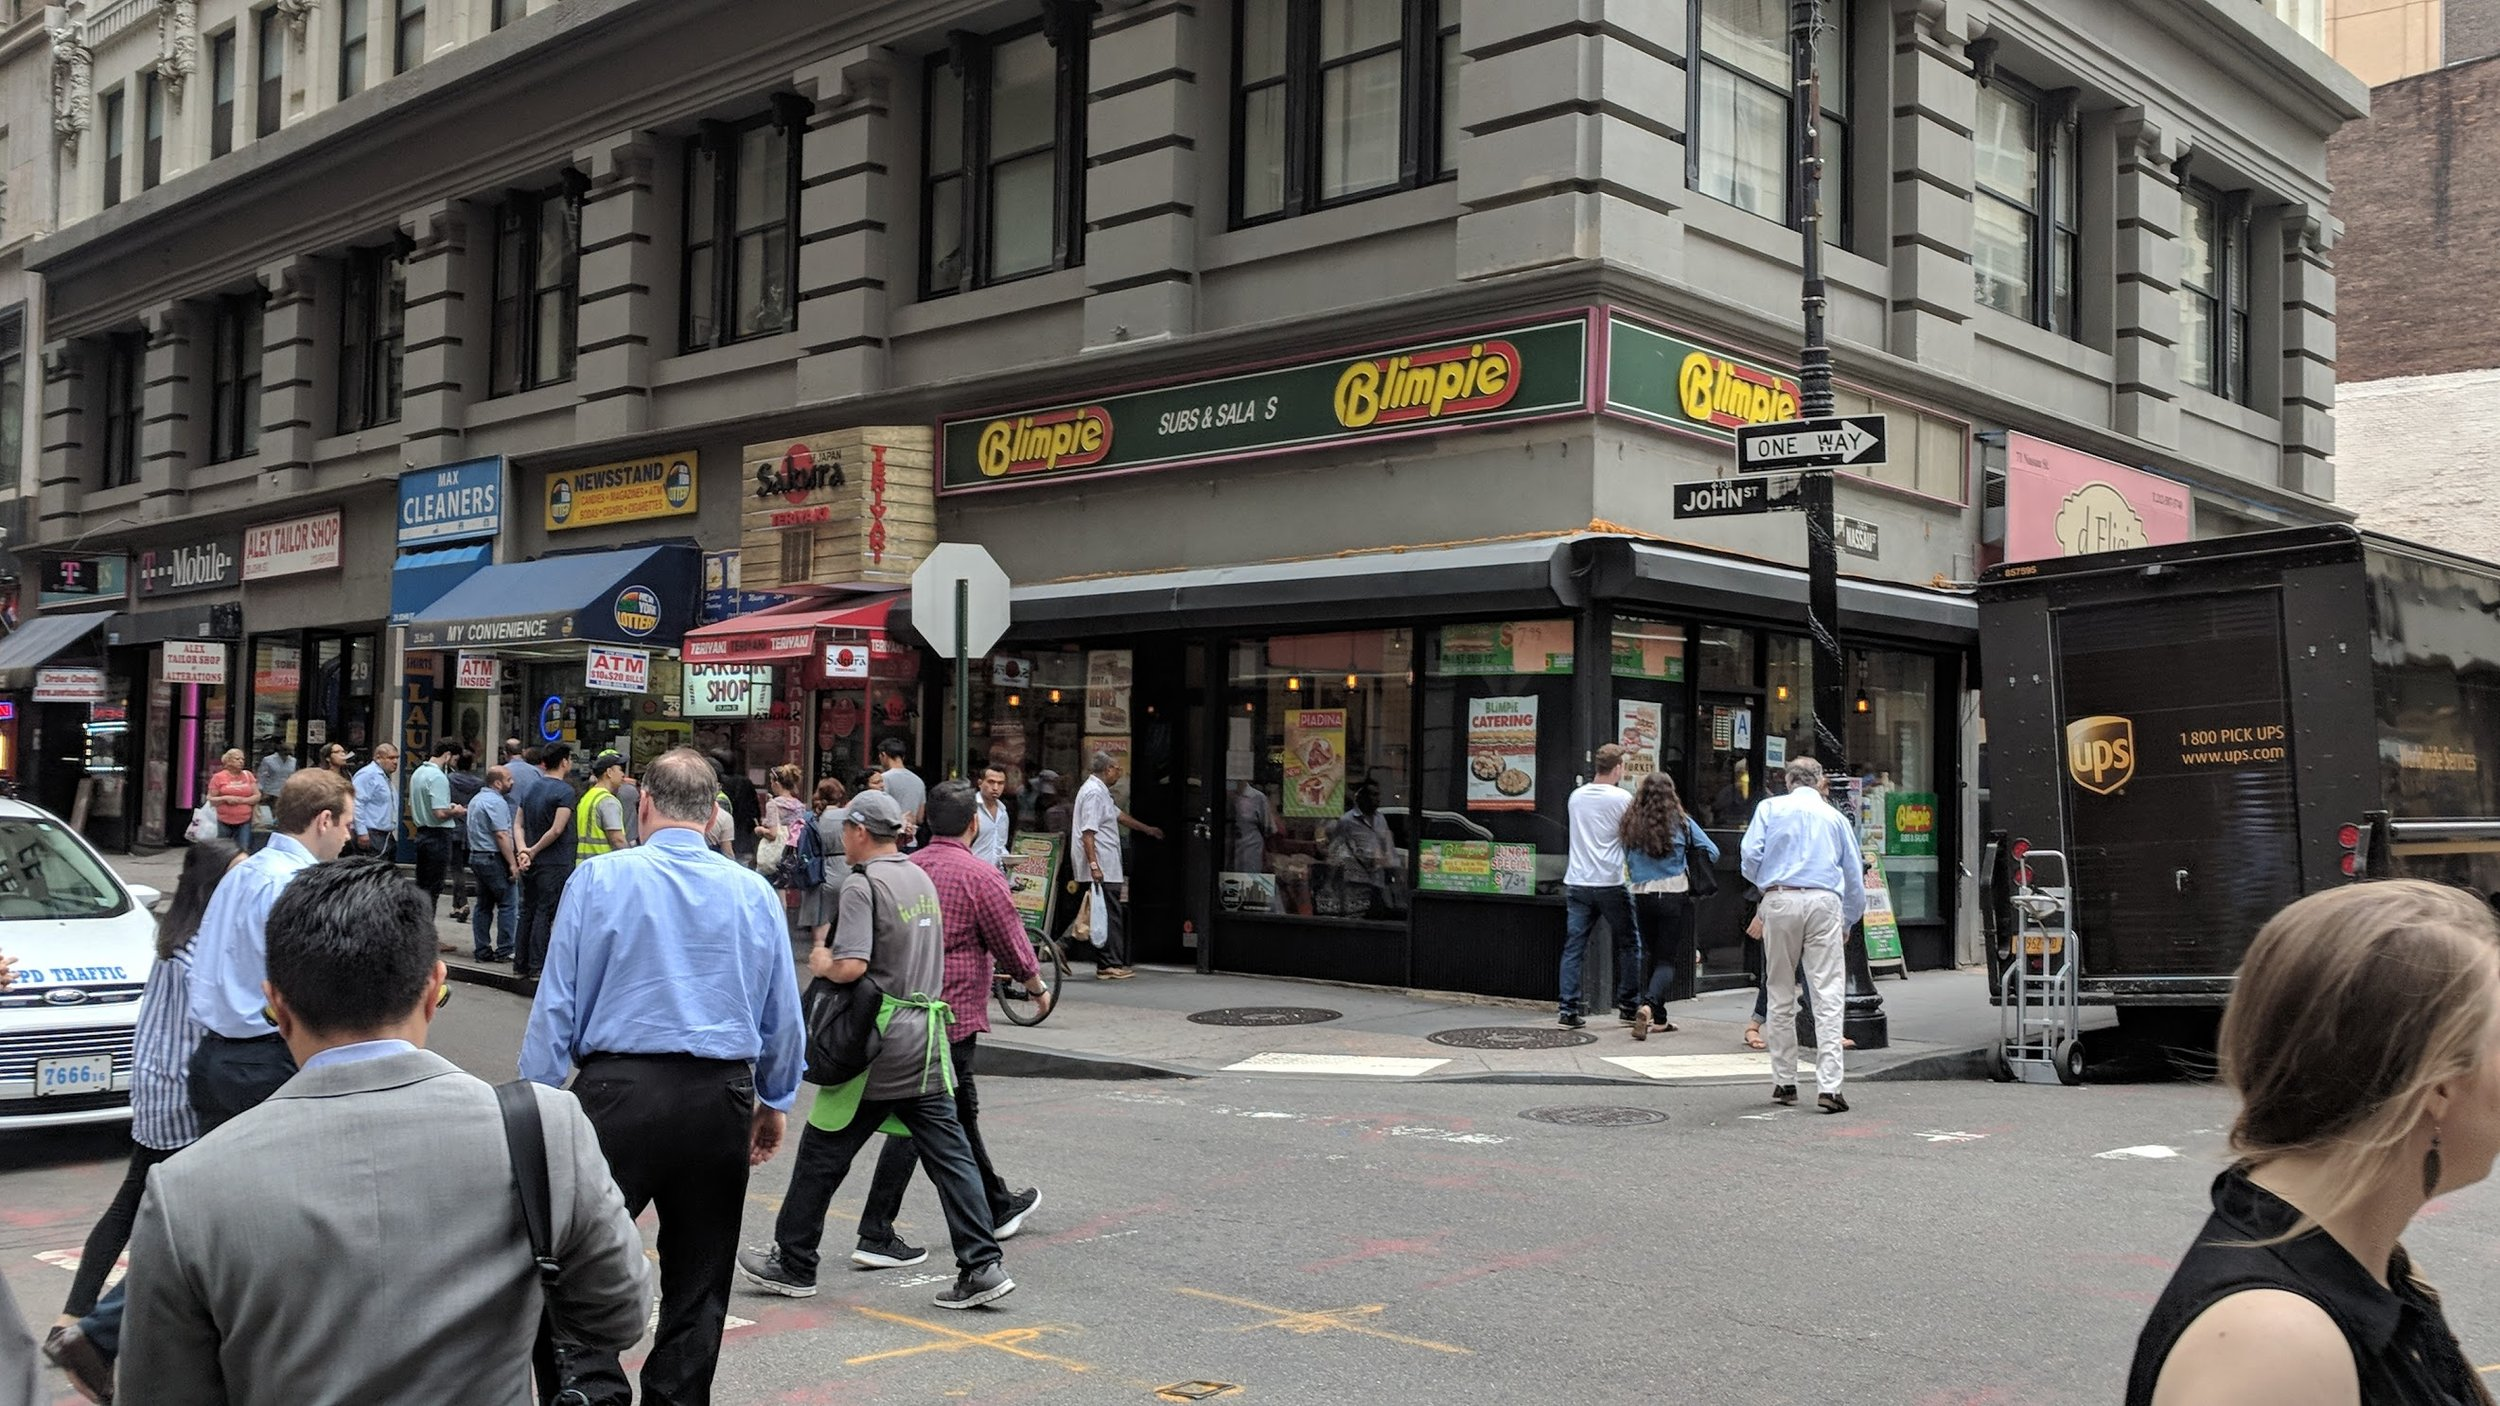 A good example of faux-granularity in Manhattan,where every retailer has the option to customize their front facade.